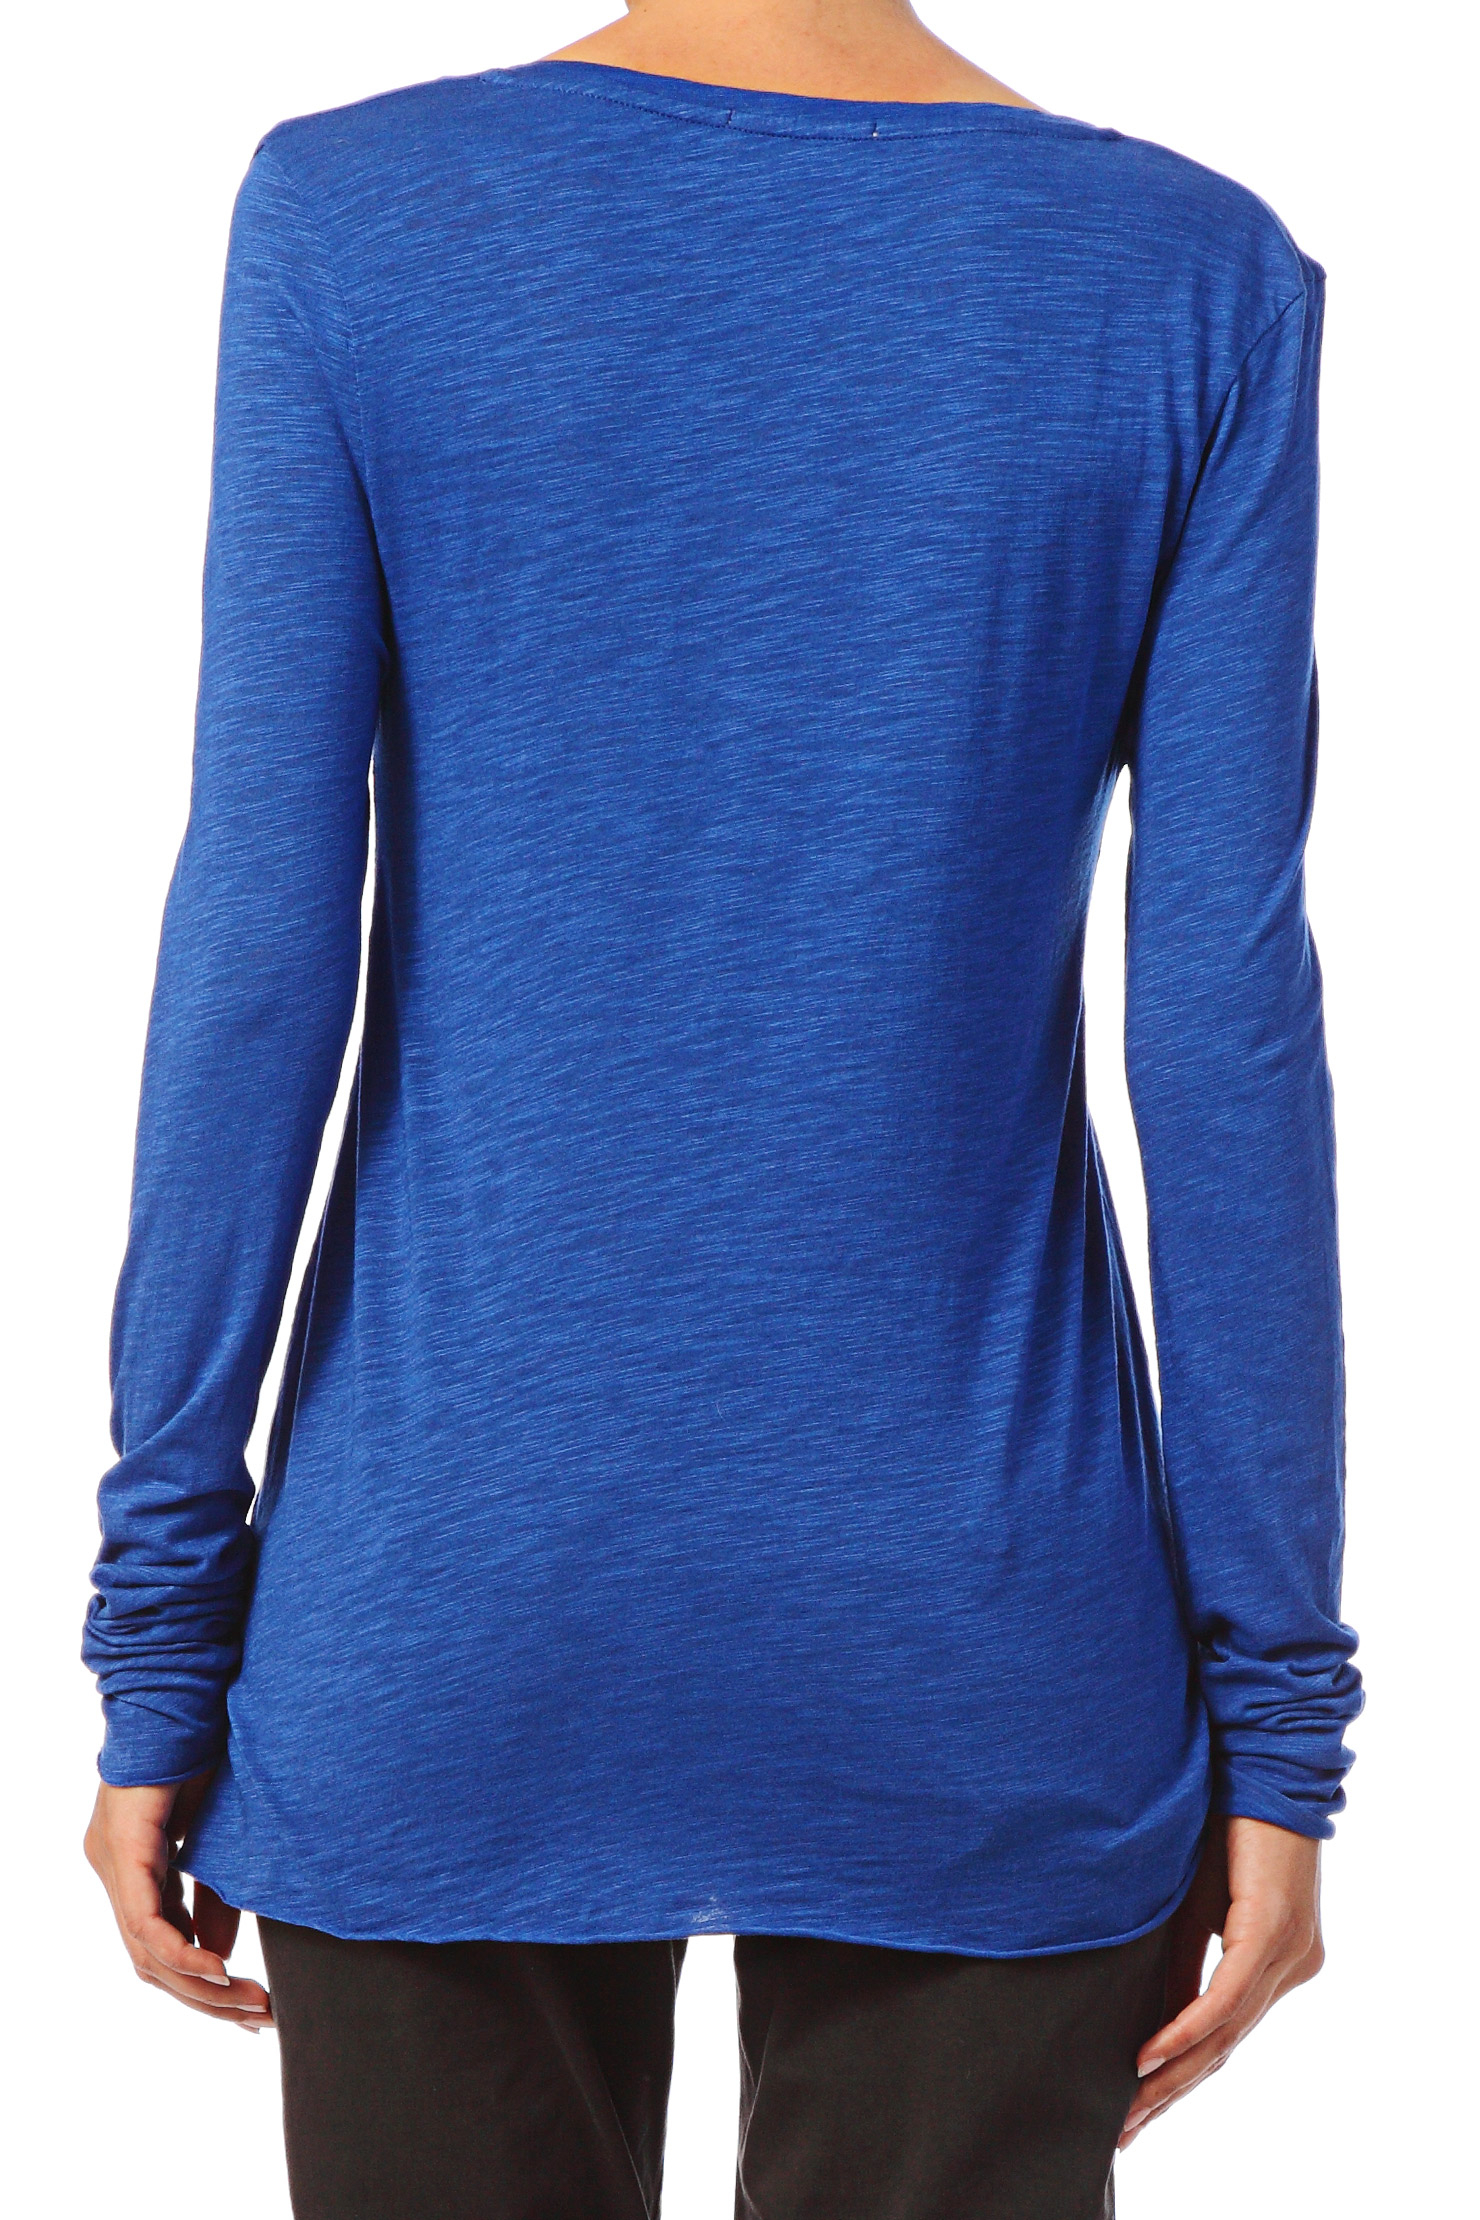 Blue eyes pattern This long sleeve top comes with a v-shaped neckline that makes it a bit more fun and interesting when you design it. Made from 90% Polyester, 10% Spandex Soft, stretchy, lightweight and quick drying fabric Standard Fit Fully Customizable Machine wash Designs imprinted using an advance heat sublimation technique, CowCow is an.